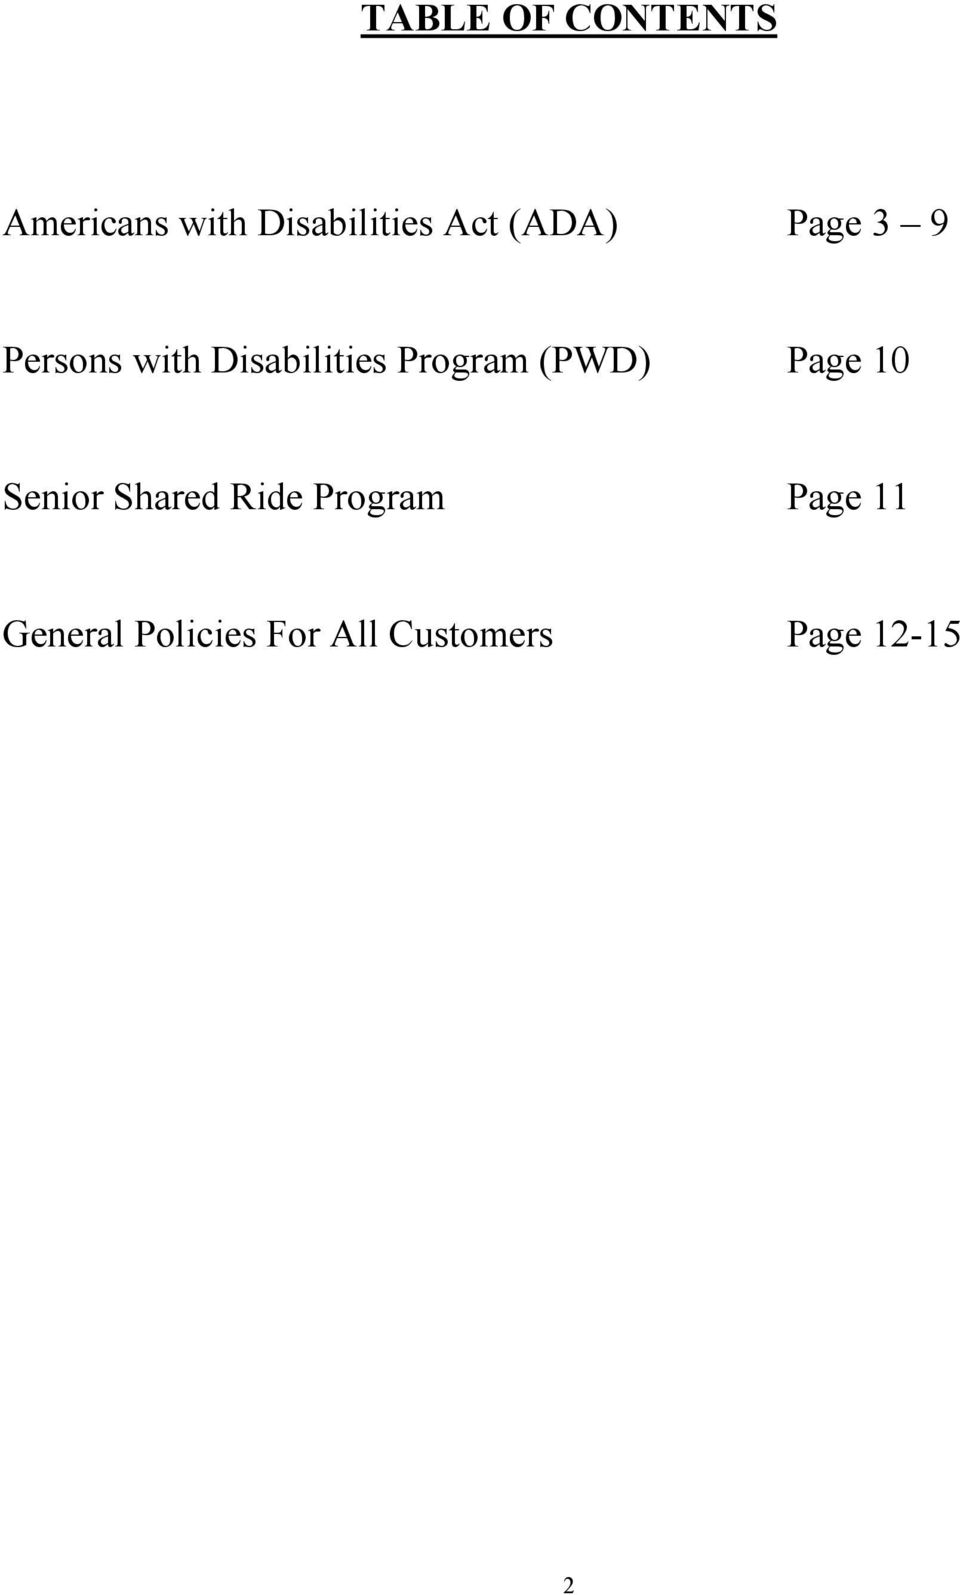 Program (PWD) Page 10 Senior Shared Ride Program